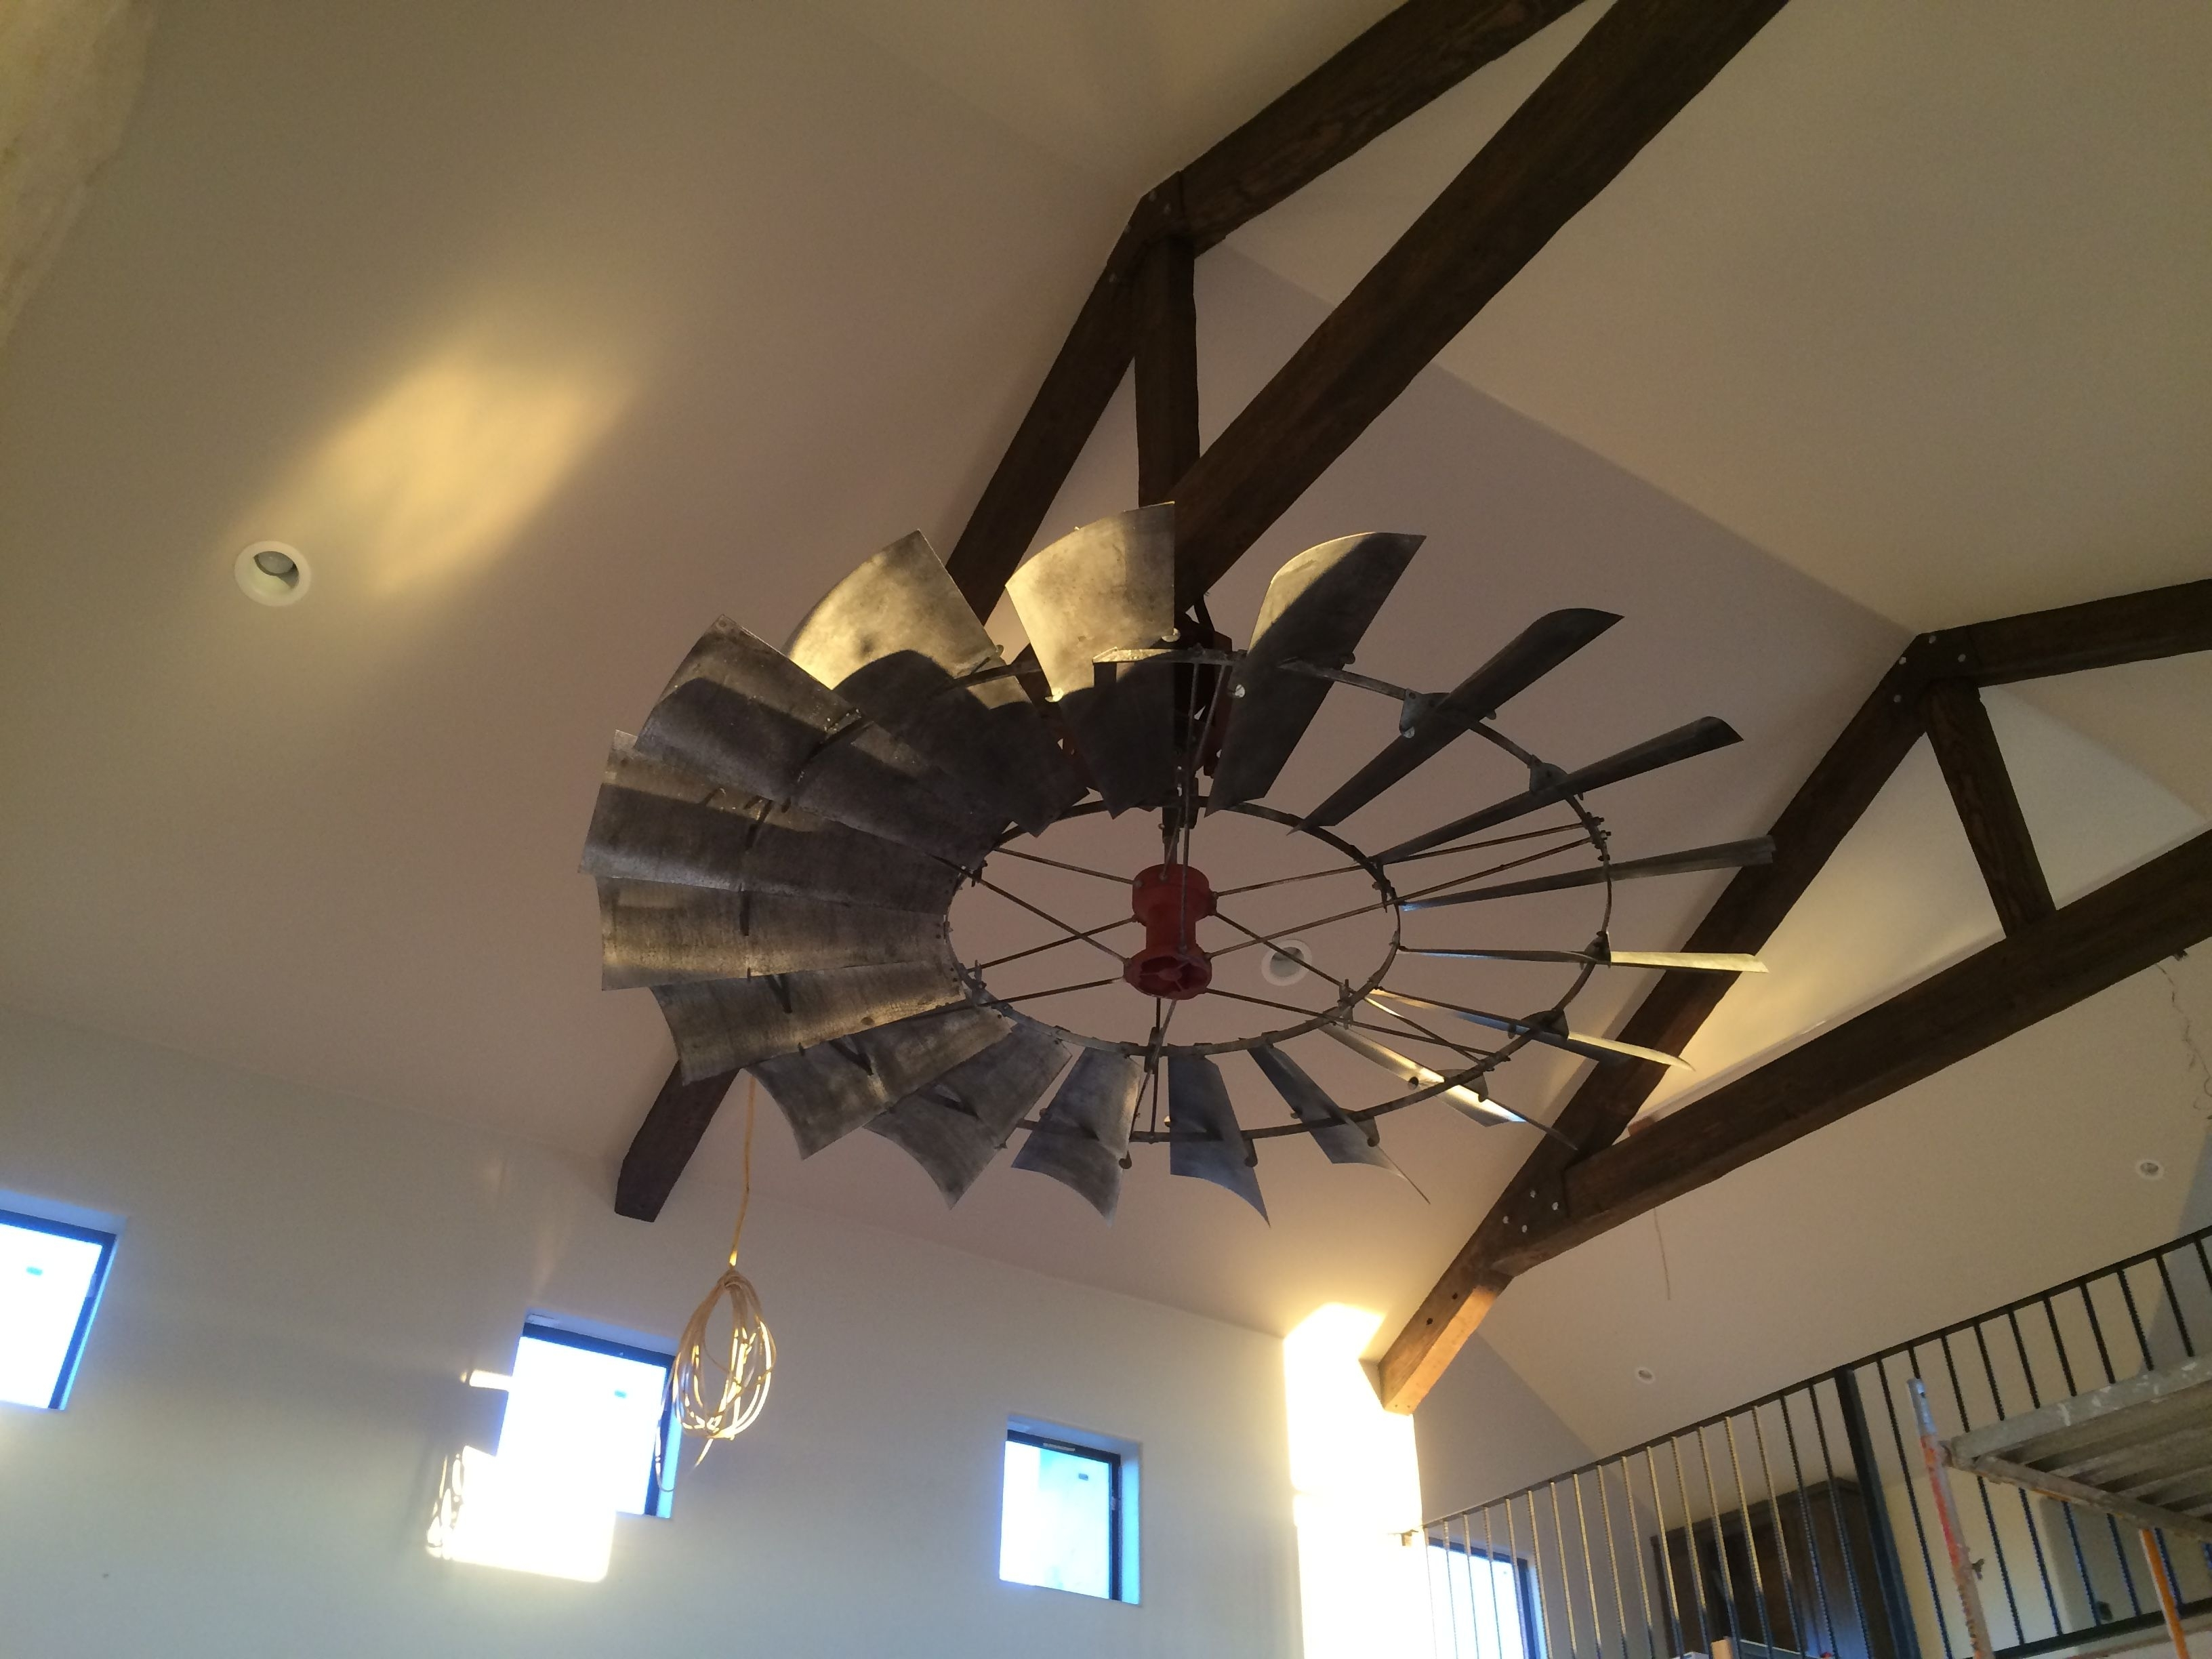 Lighting Pertaining To Widely Used Outdoor Windmill Ceiling Fans With Light (View 7 of 20)